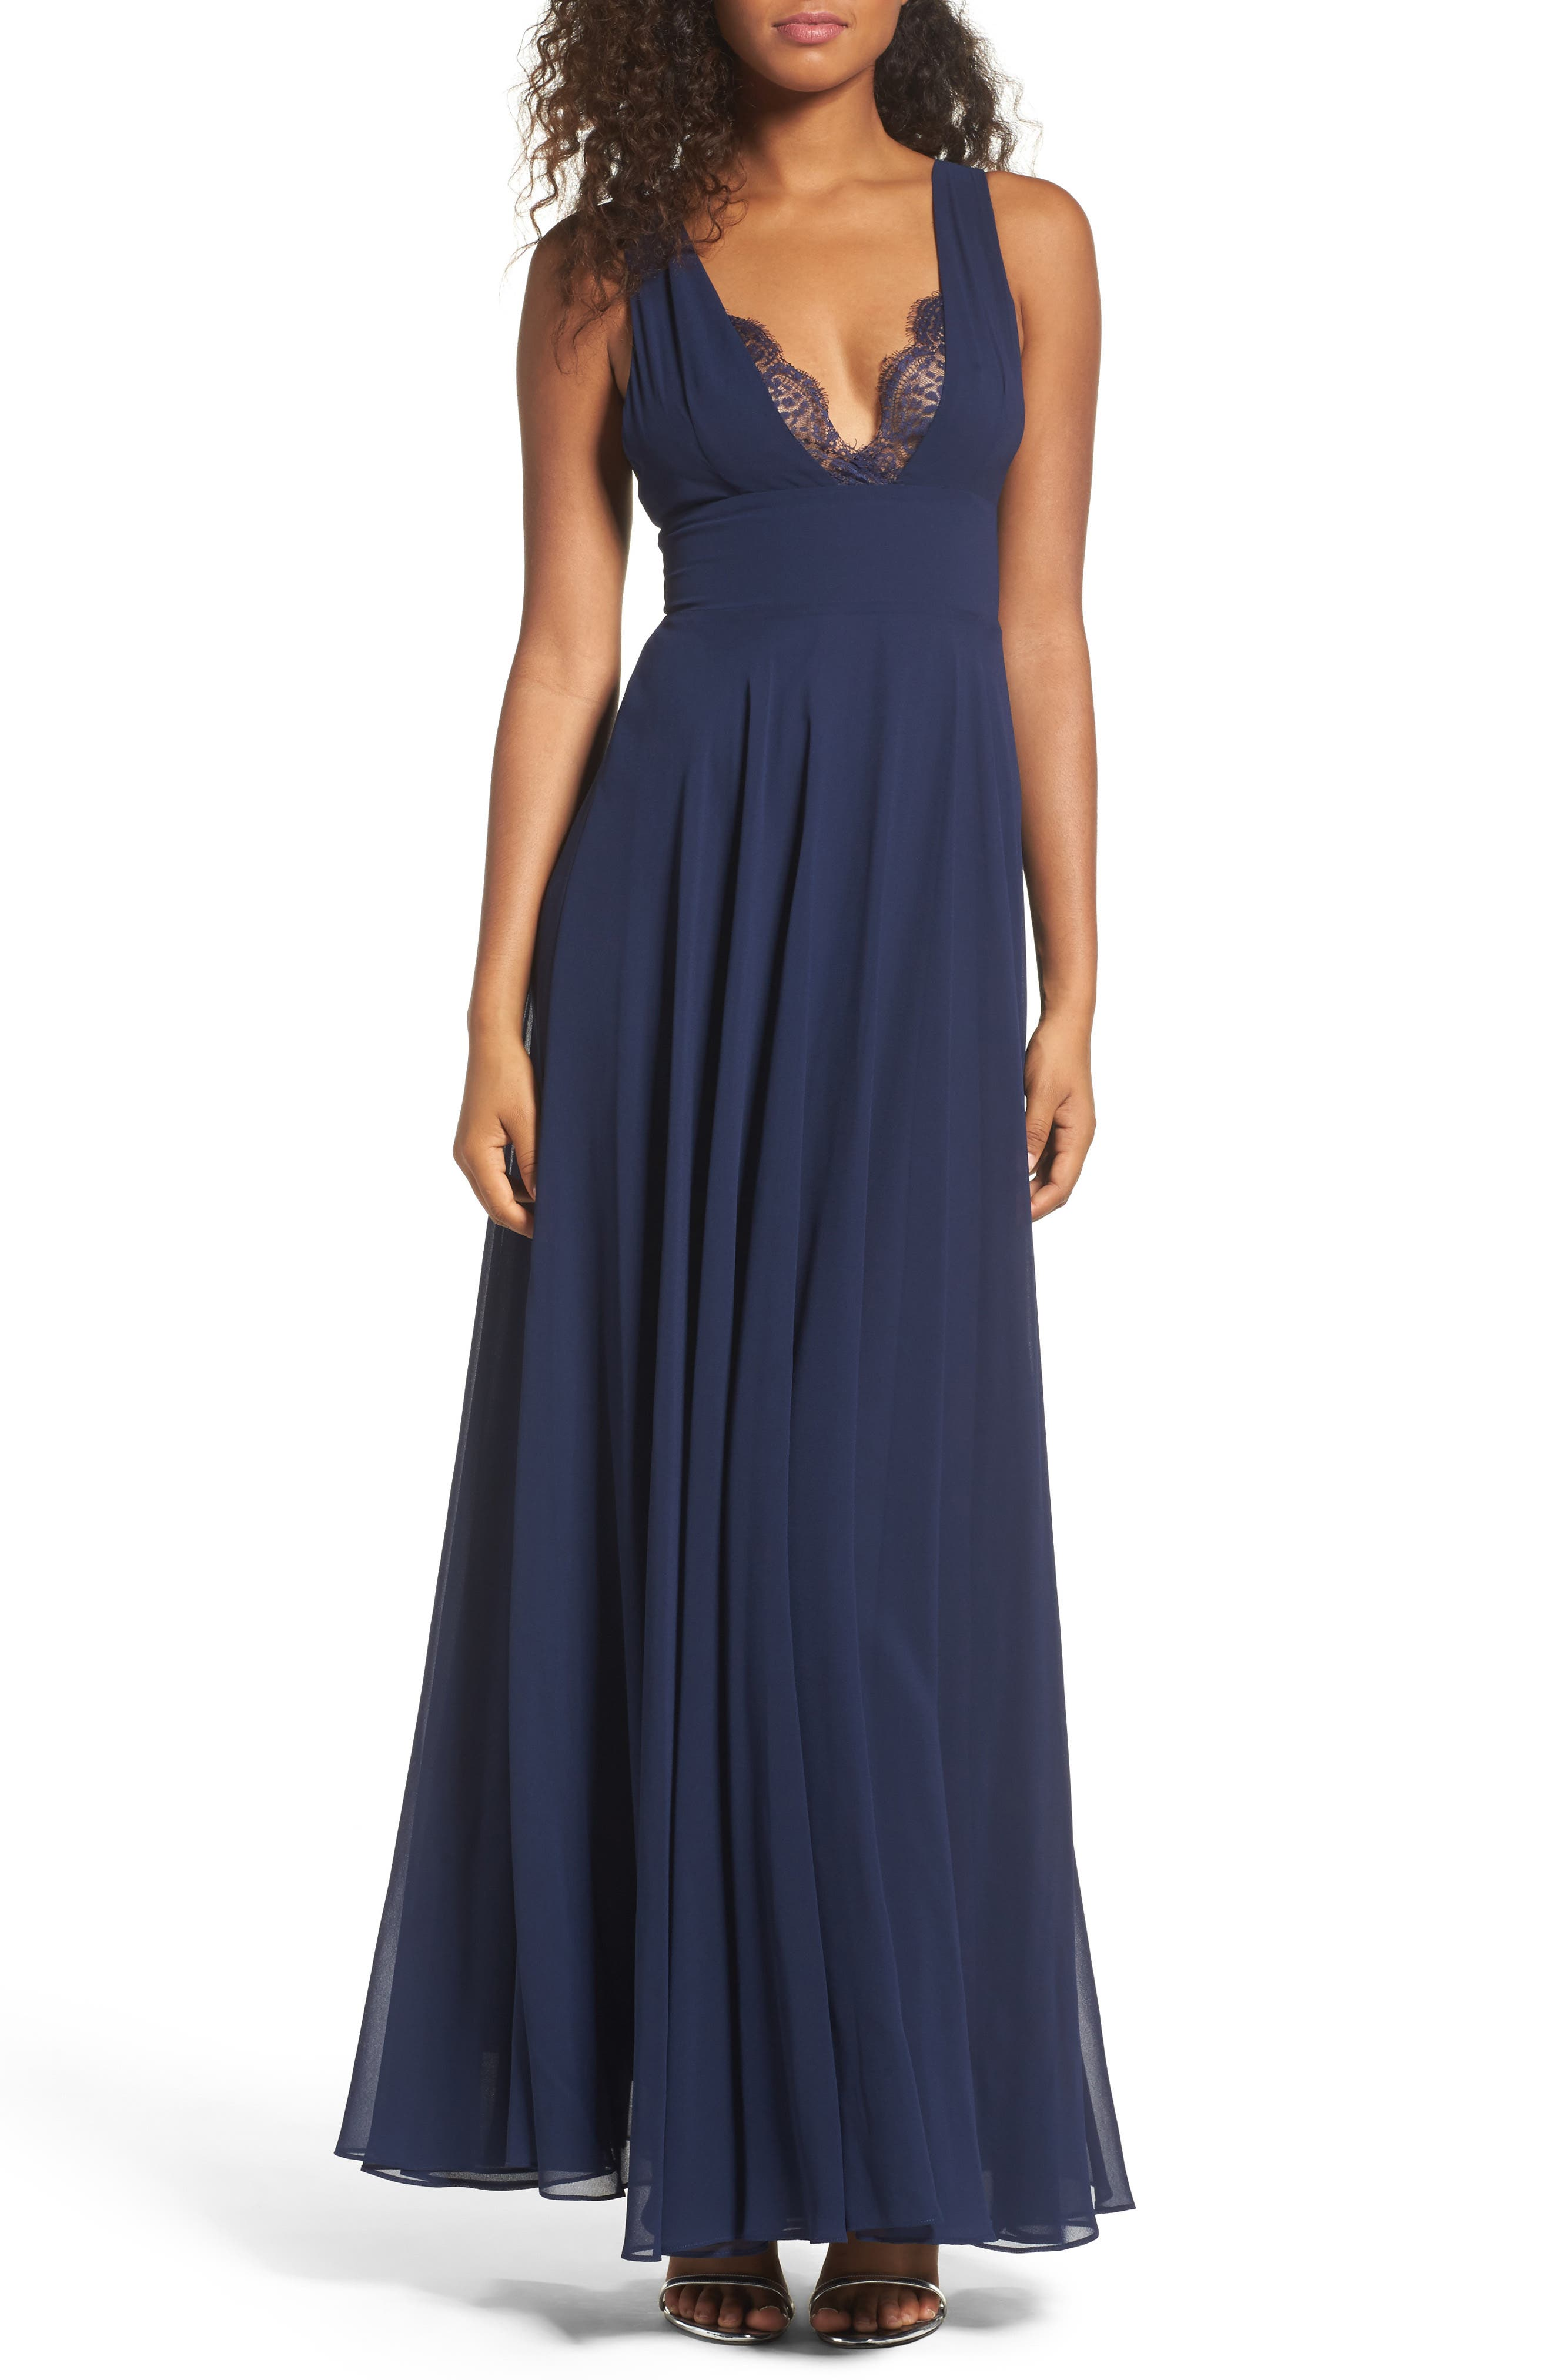 Bridesmaid wedding party dresses nordstrom lulus lace trim chiffon maxi dress black grey navy ombrellifo Gallery